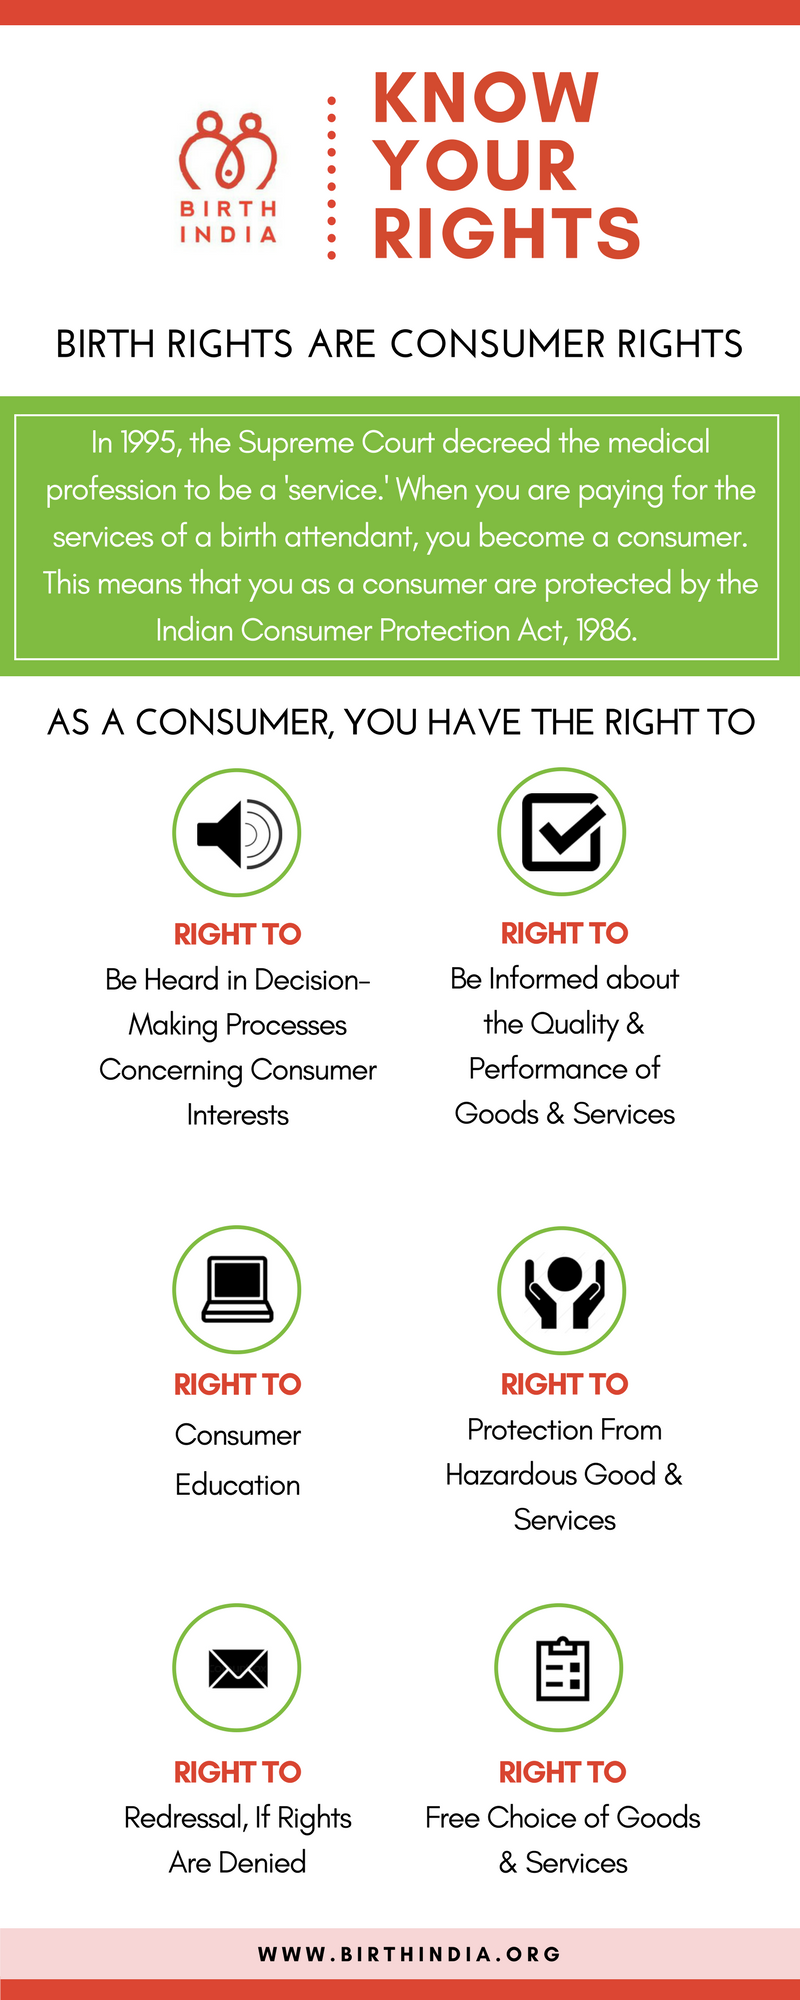 Birth Rights Are Consumer Rights | Know Your Rights | Birth India